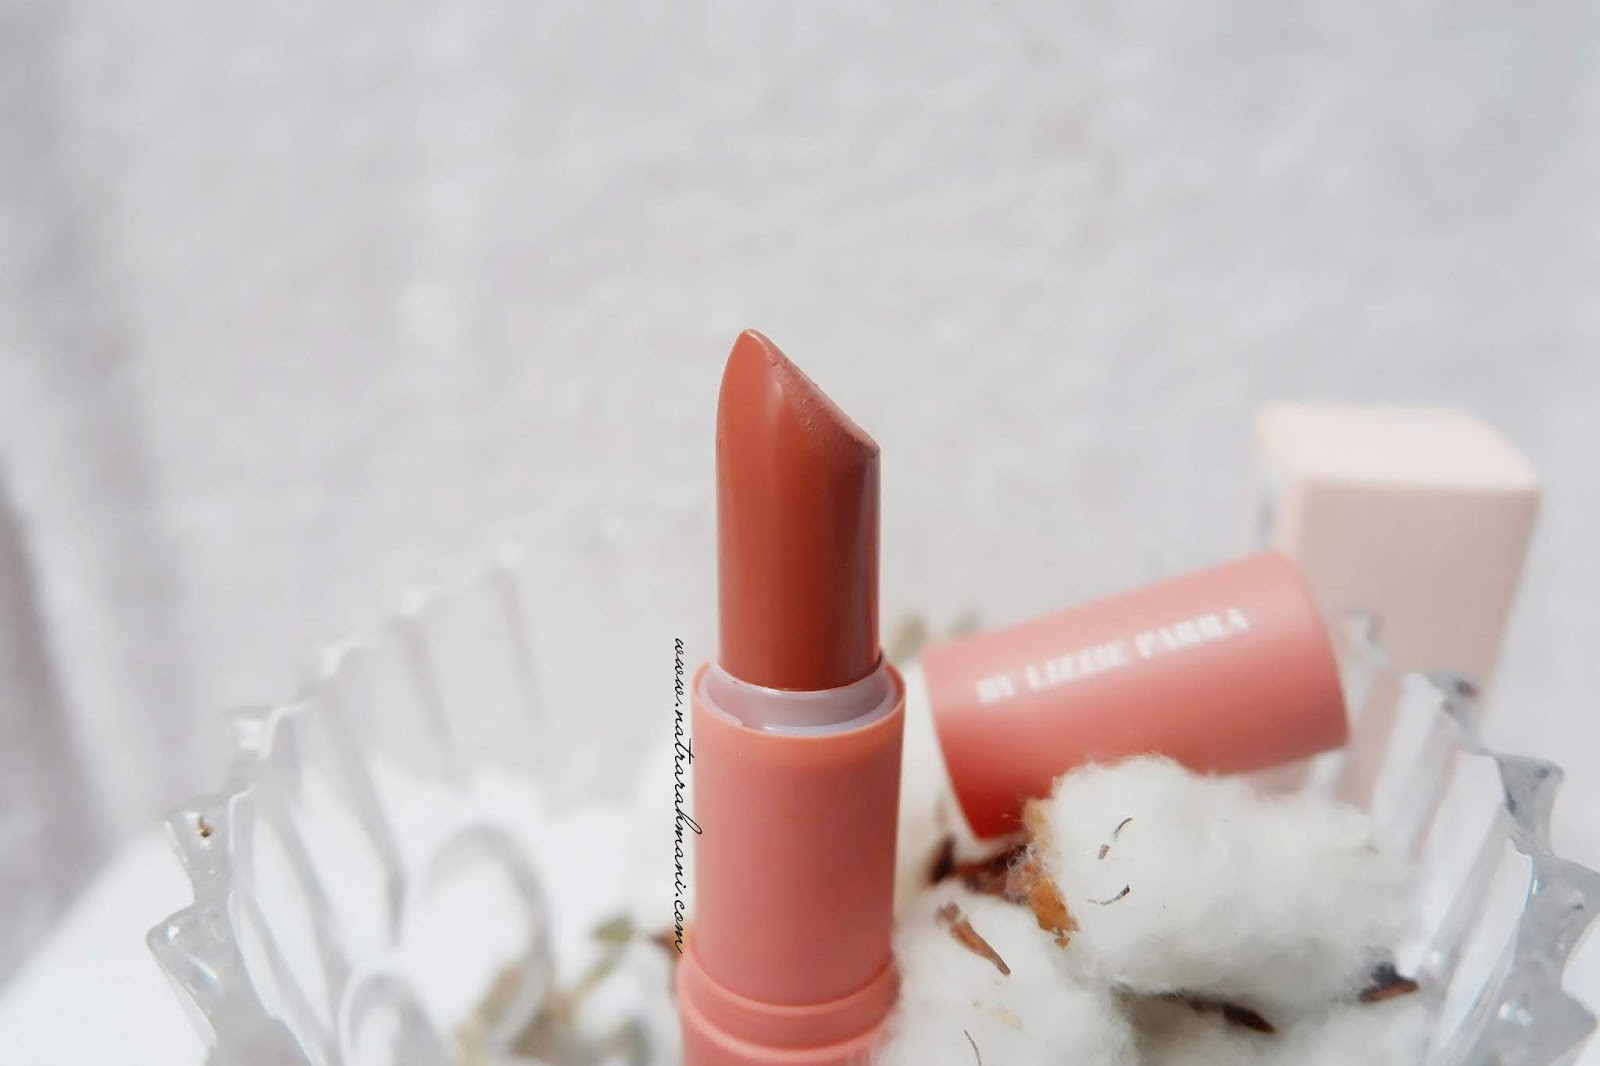 review-lip-bullet-blp-beauty-shade-pavlova